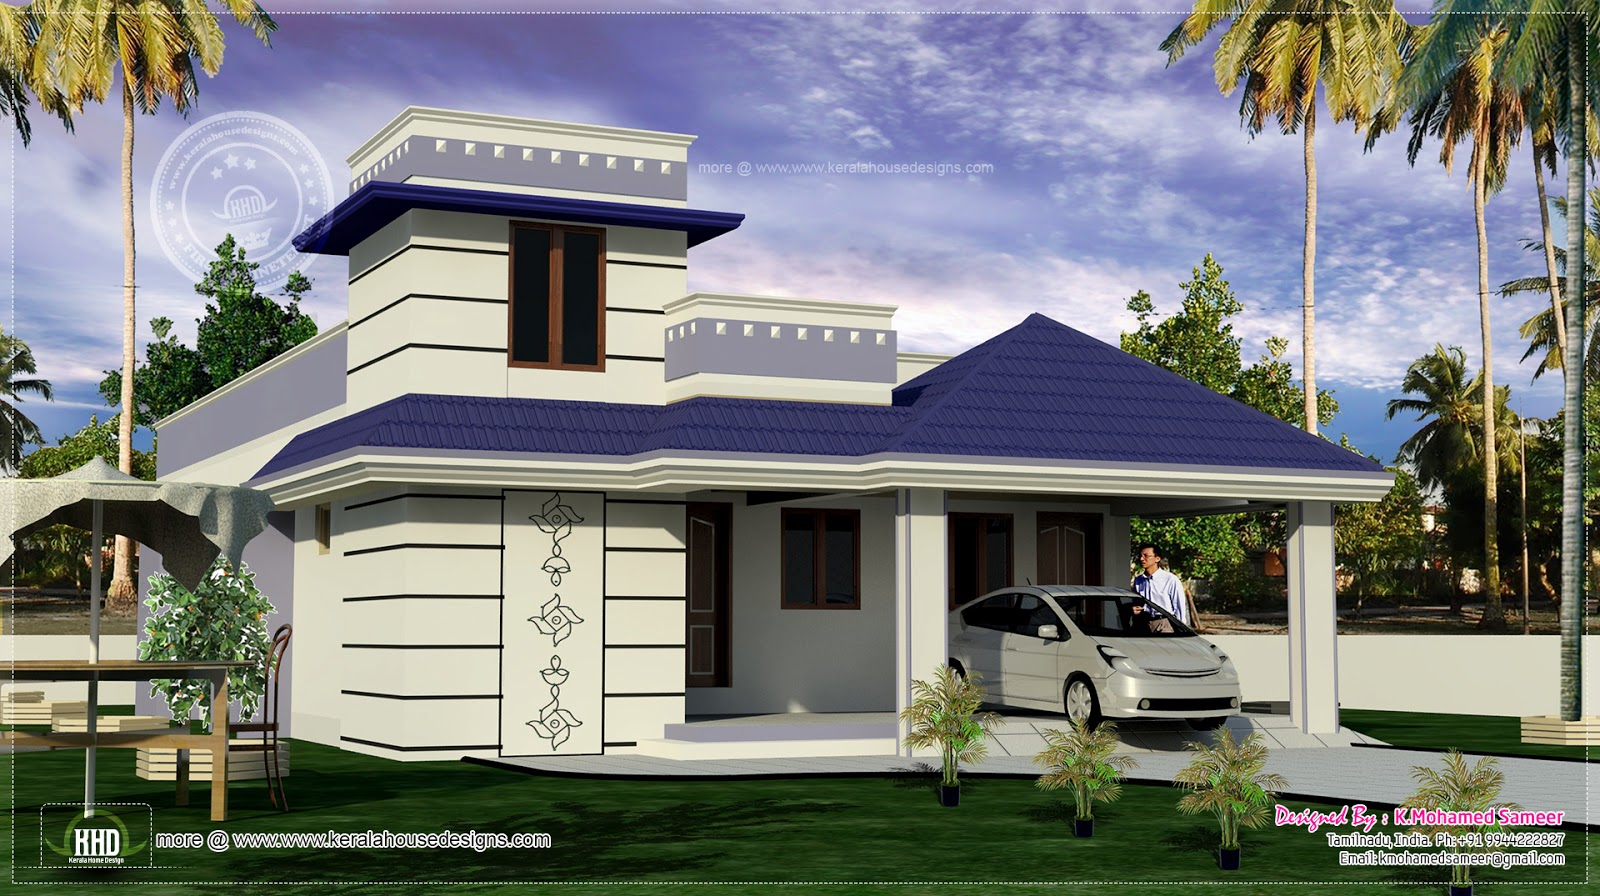 1700 one floor for south indian home kerala home House designs single floor